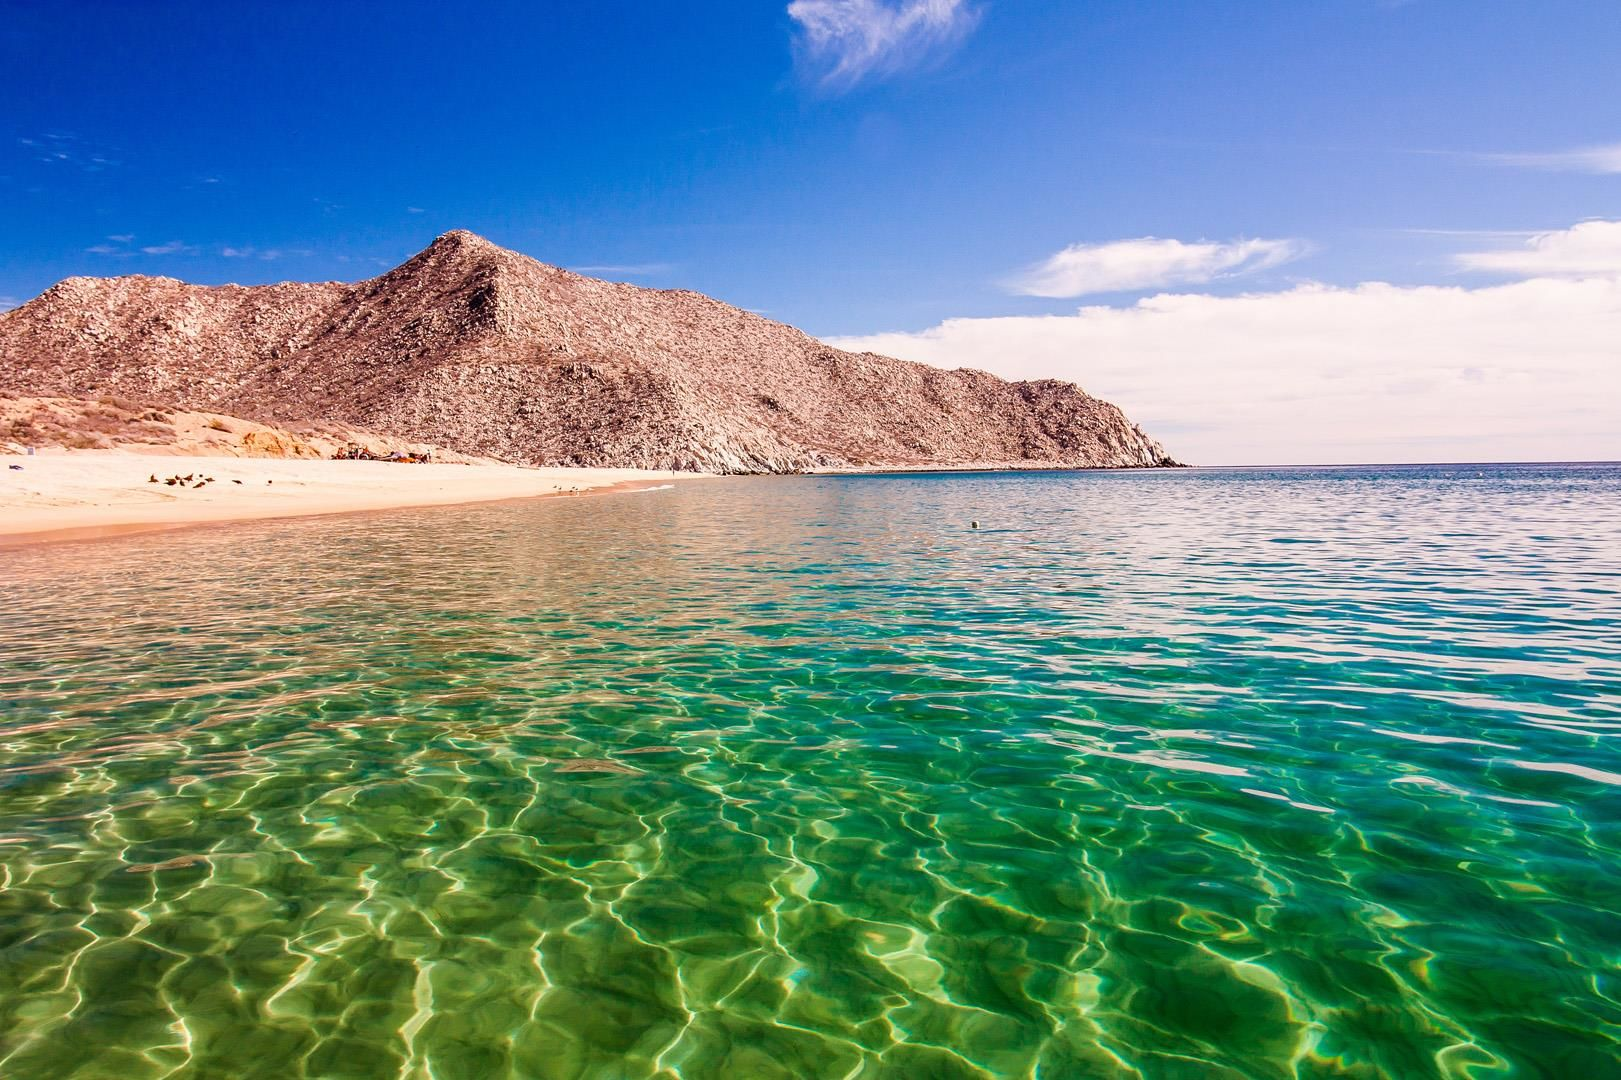 Vactions in Baja, Mexico